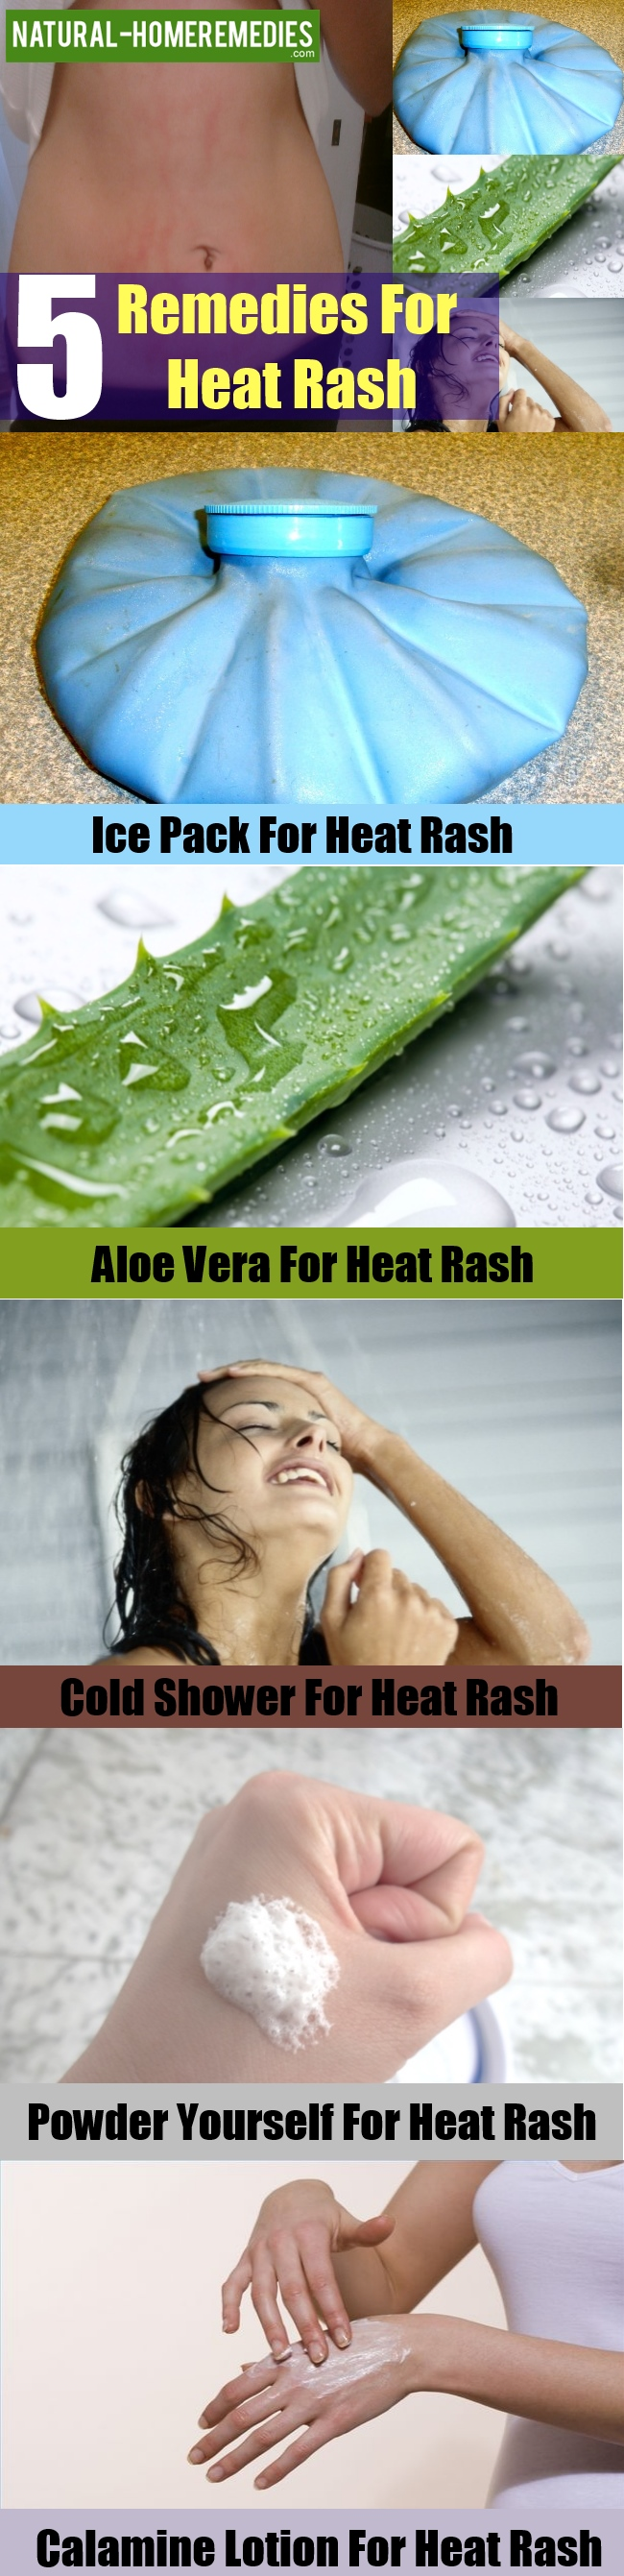 Remedies For Heat Rash